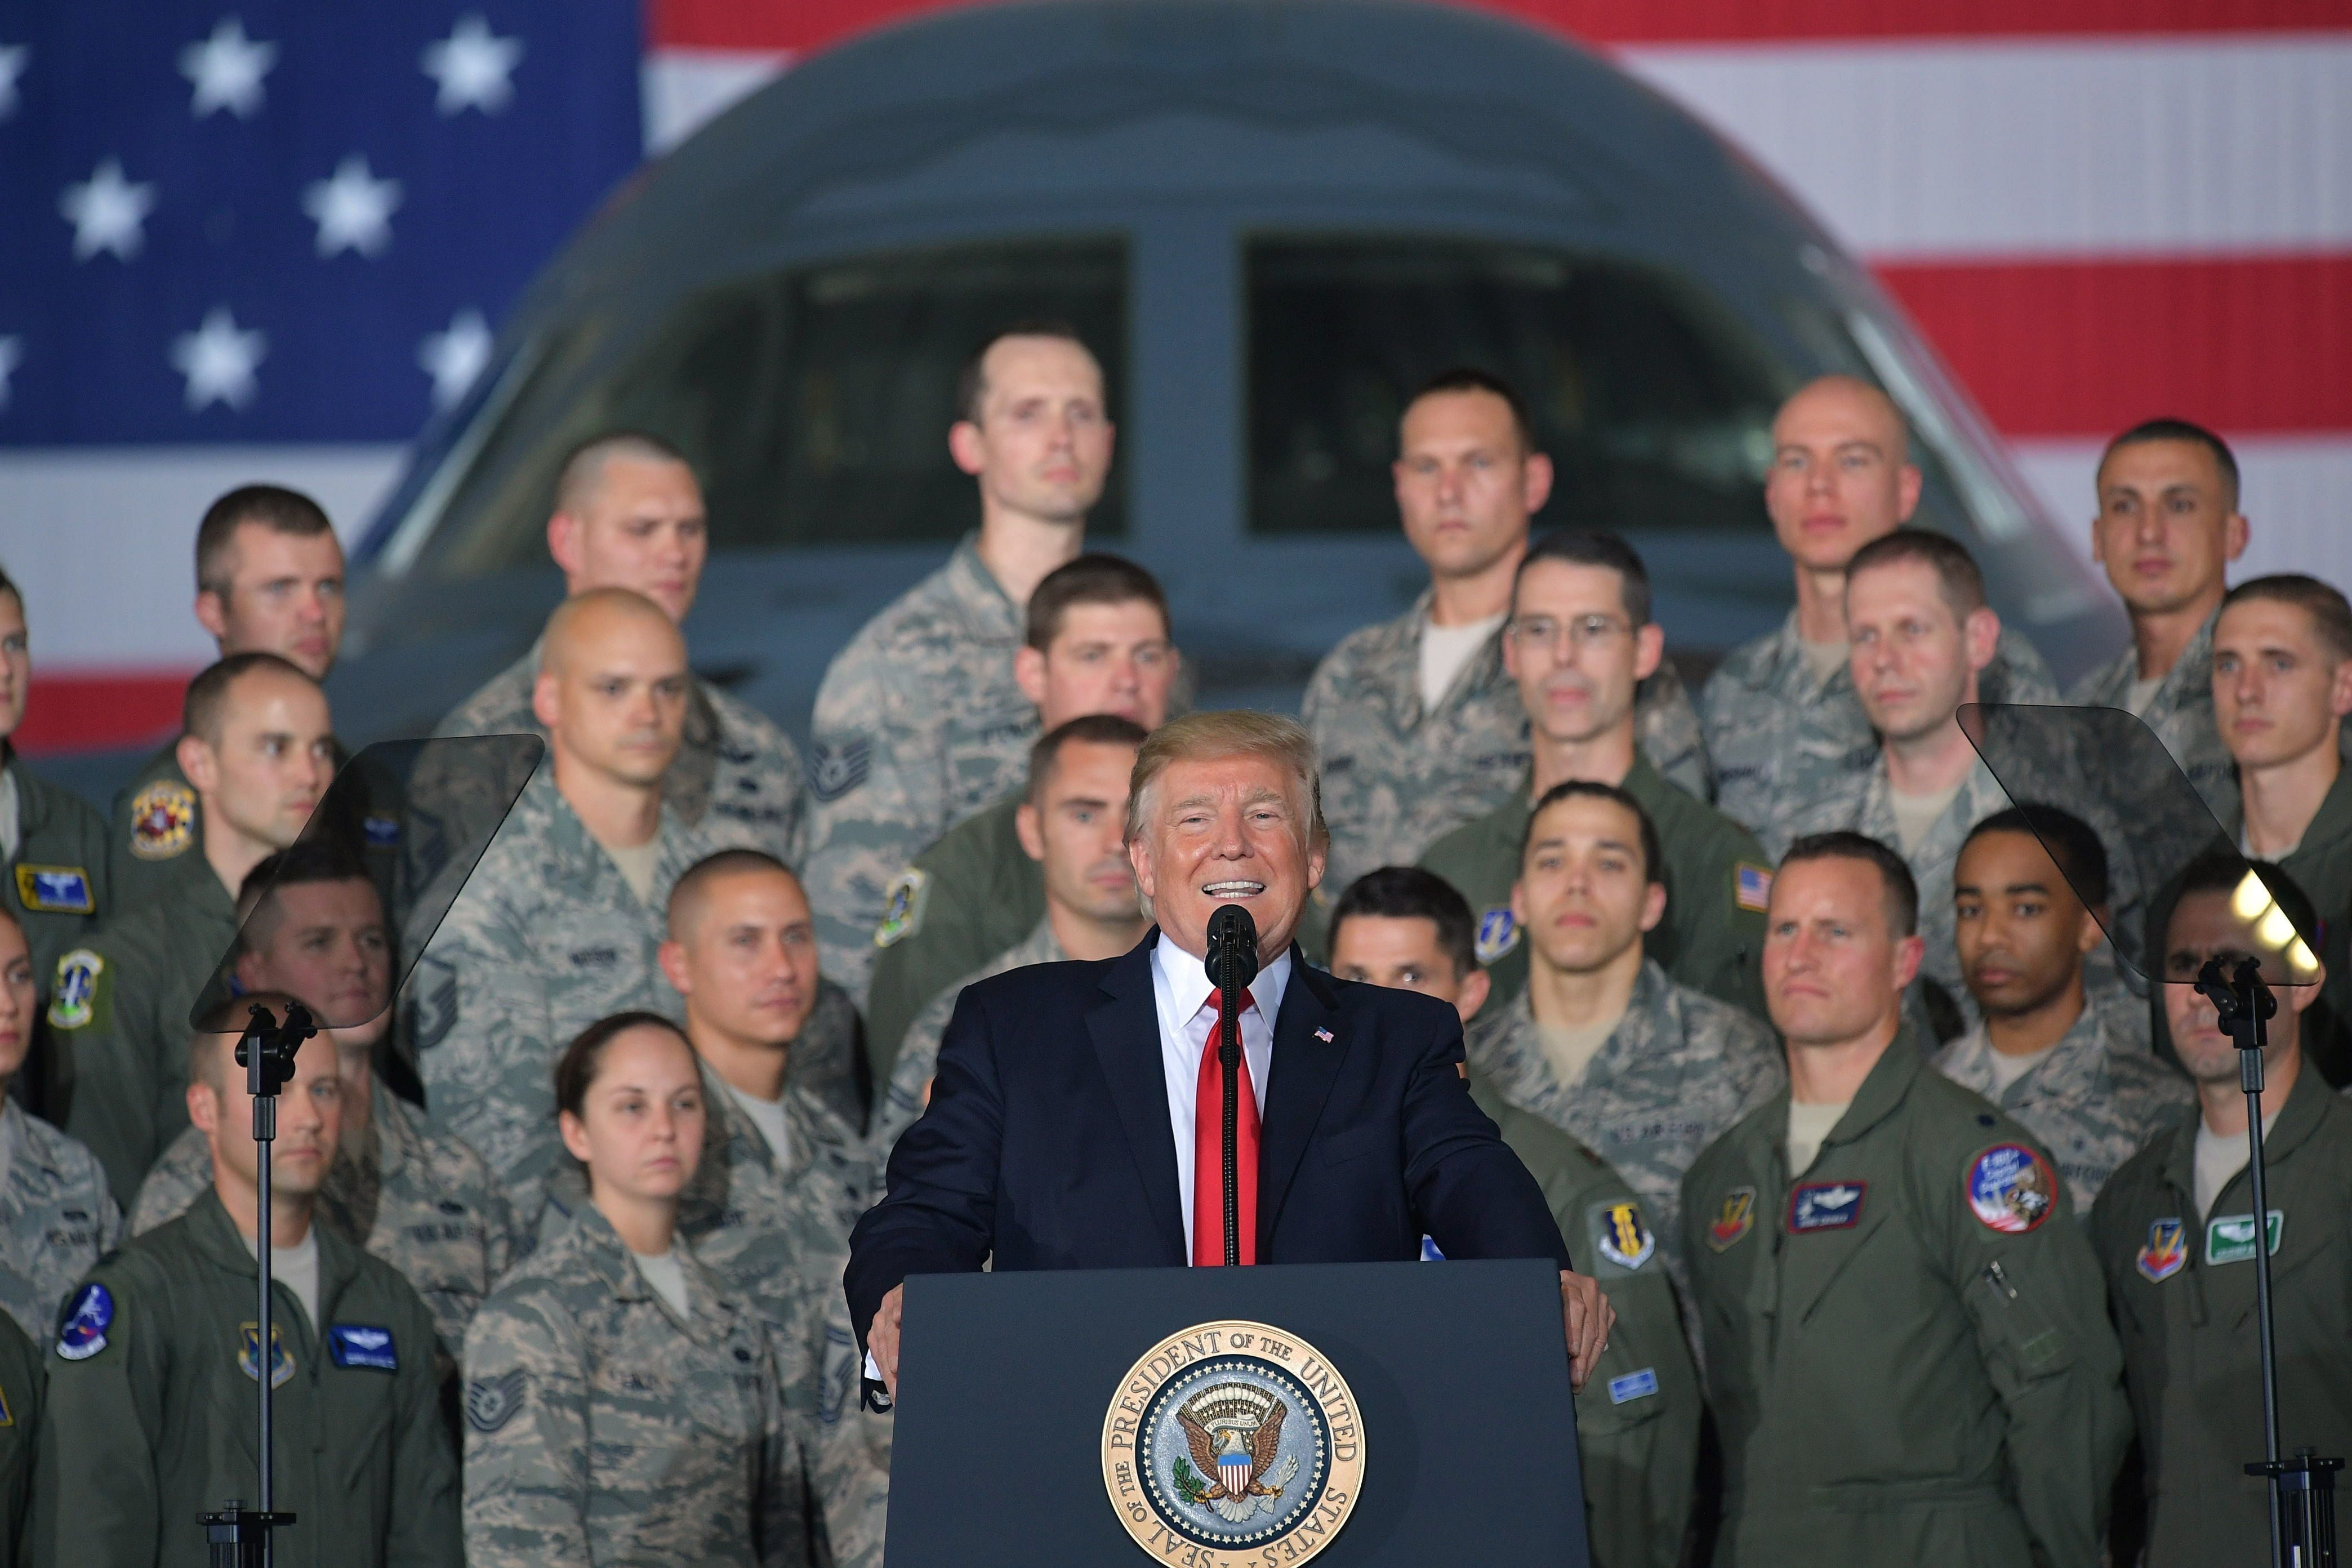 US President Donald Trump speaks to members of the military at Joint Andrews Airforce base, Maryland on September 15, 2017.   / AFP PHOTO / MANDEL NGAN        (Photo credit should read MANDEL NGAN/AFP/Getty Images)